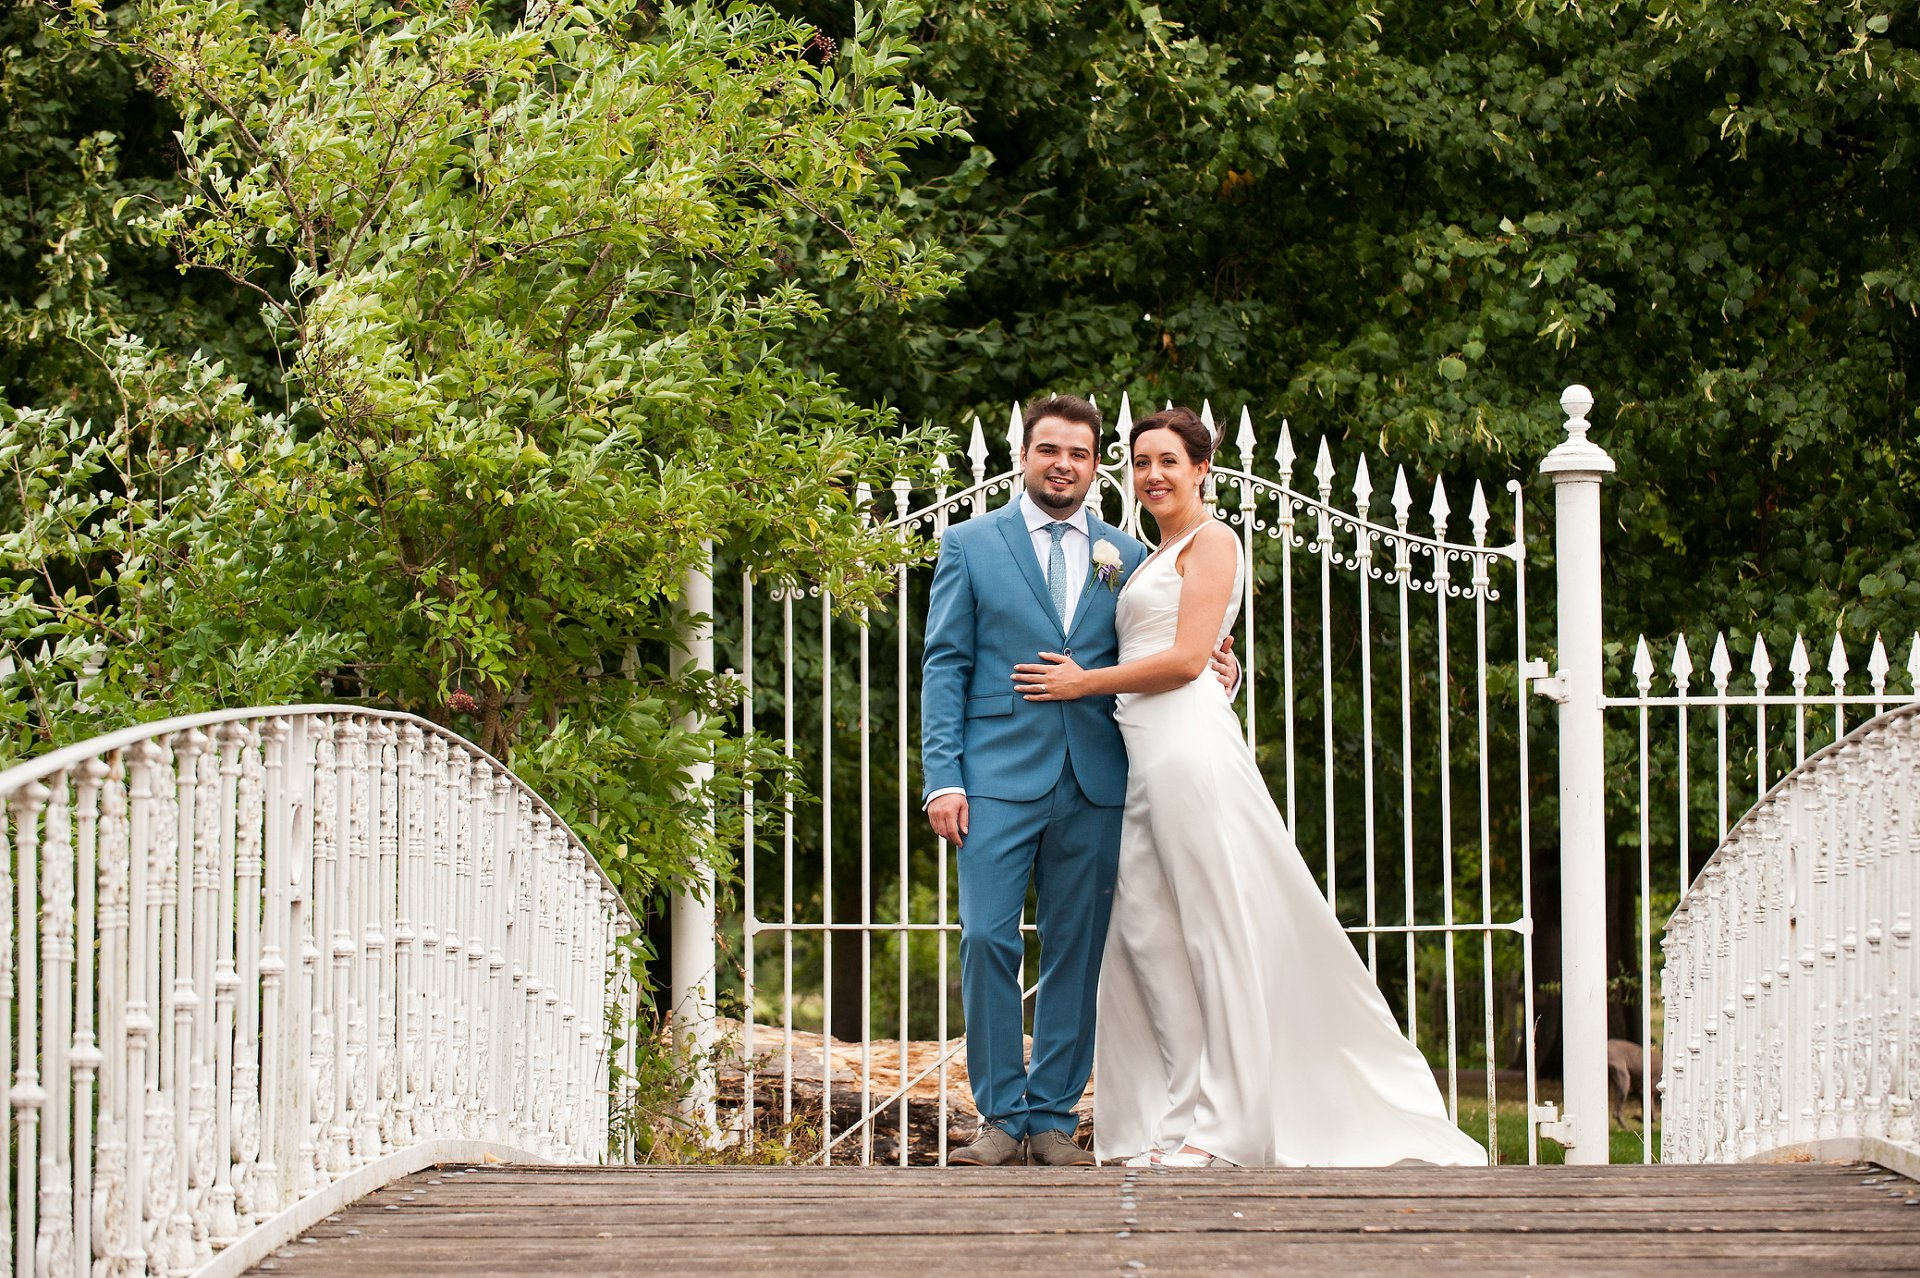 Stylish bride & groom on the little white bridge at Morden Hall in south London